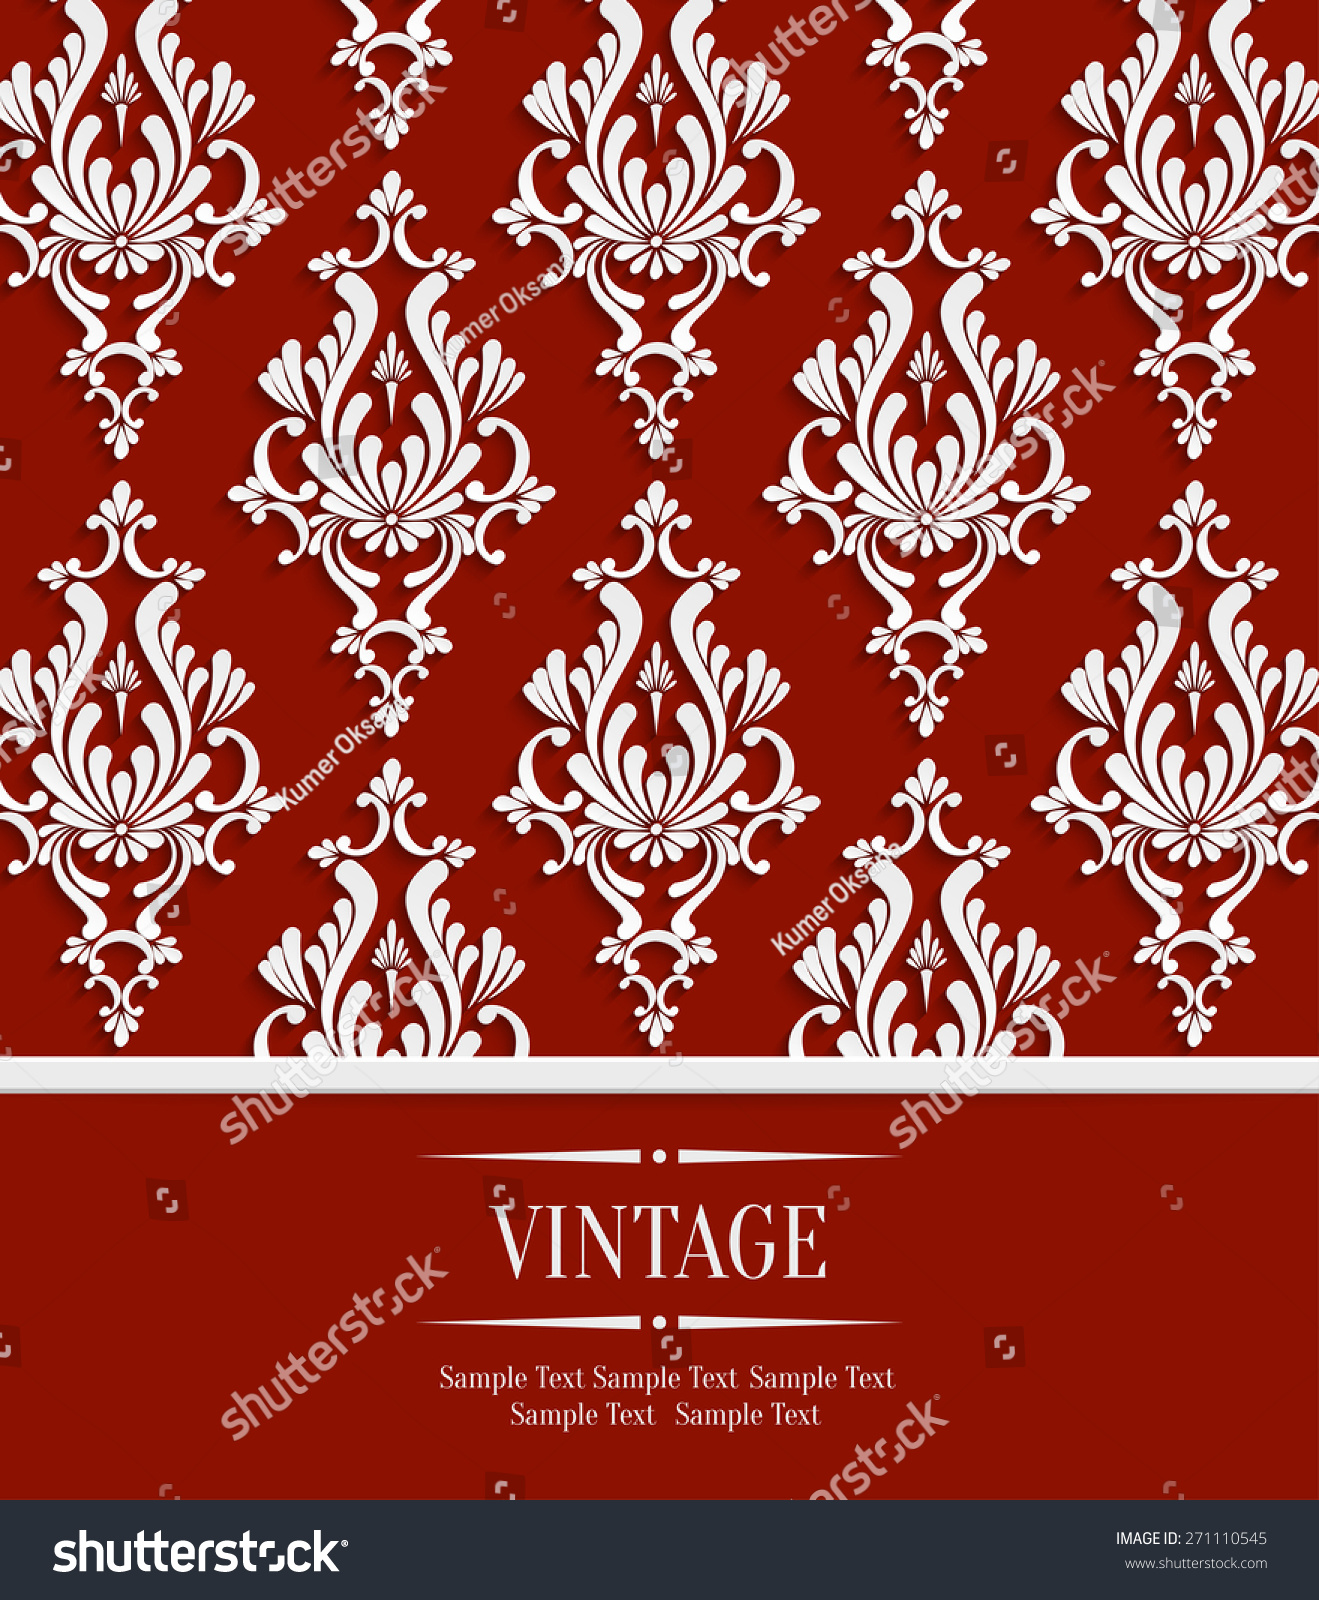 Vector Red Vintage Wedding Invitation Background Stock Vector ...